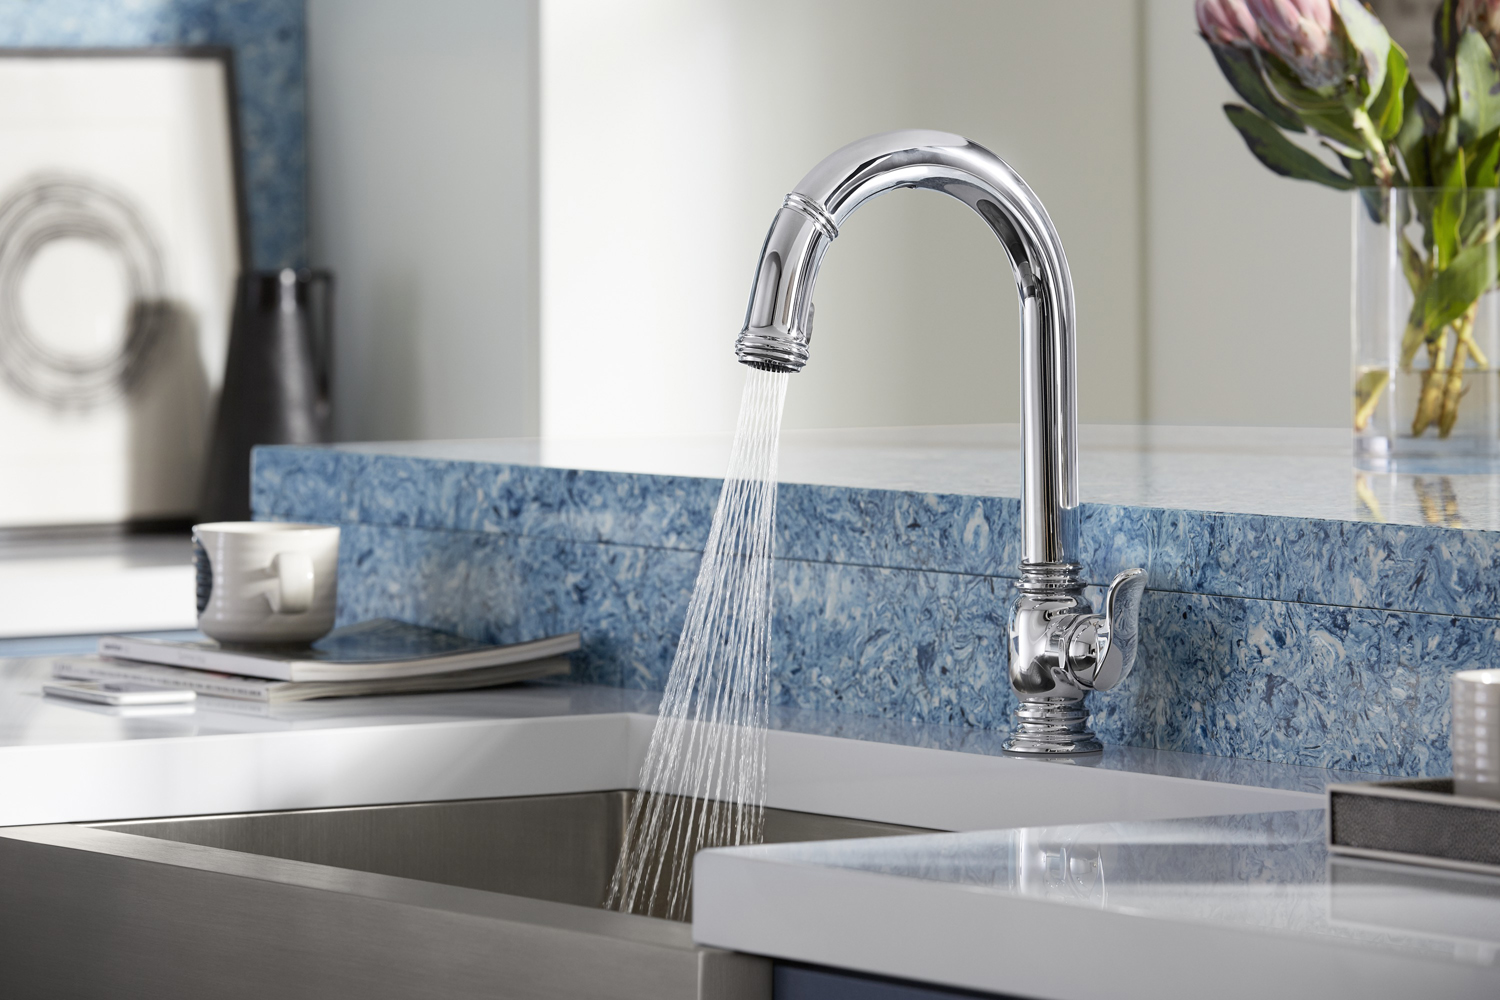 Strive® farmhouse kitchen sink     Beckon® touchless kitchen faucet     White Zeus Extreme countertop     Albedo wall and breakfast counter     Make food prep and cleanup easier and cleaner with a touchless faucet. Simply wave your hands under the faucet to turn it on.